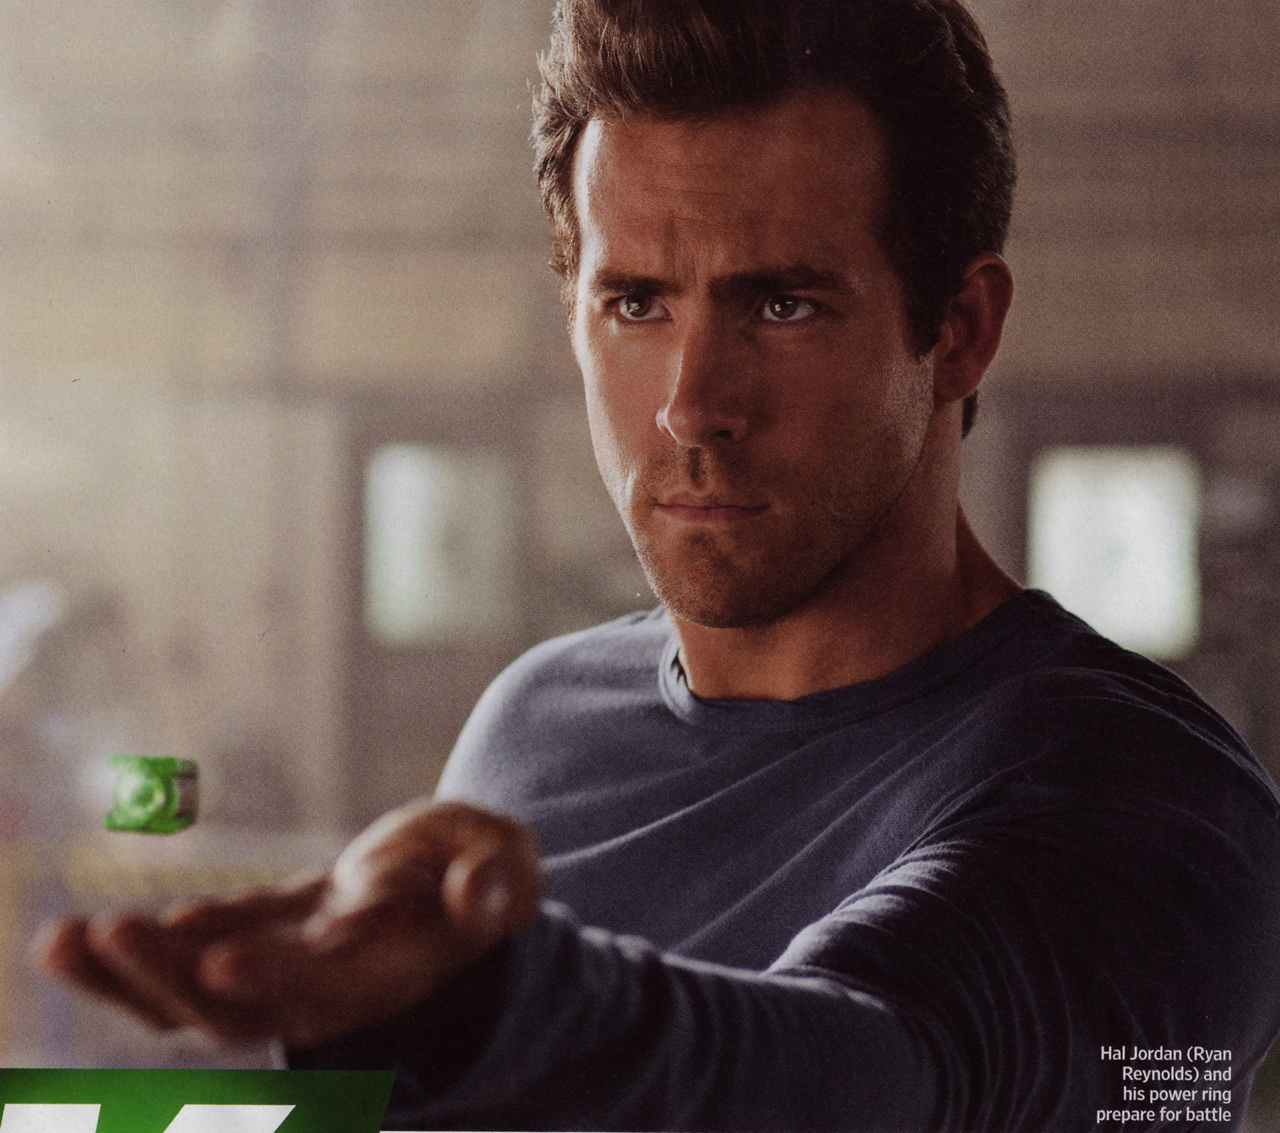 Ryan Reynolds Fakes on First Picture Of Ryan Reynolds As The Green Lantern From Entertainment